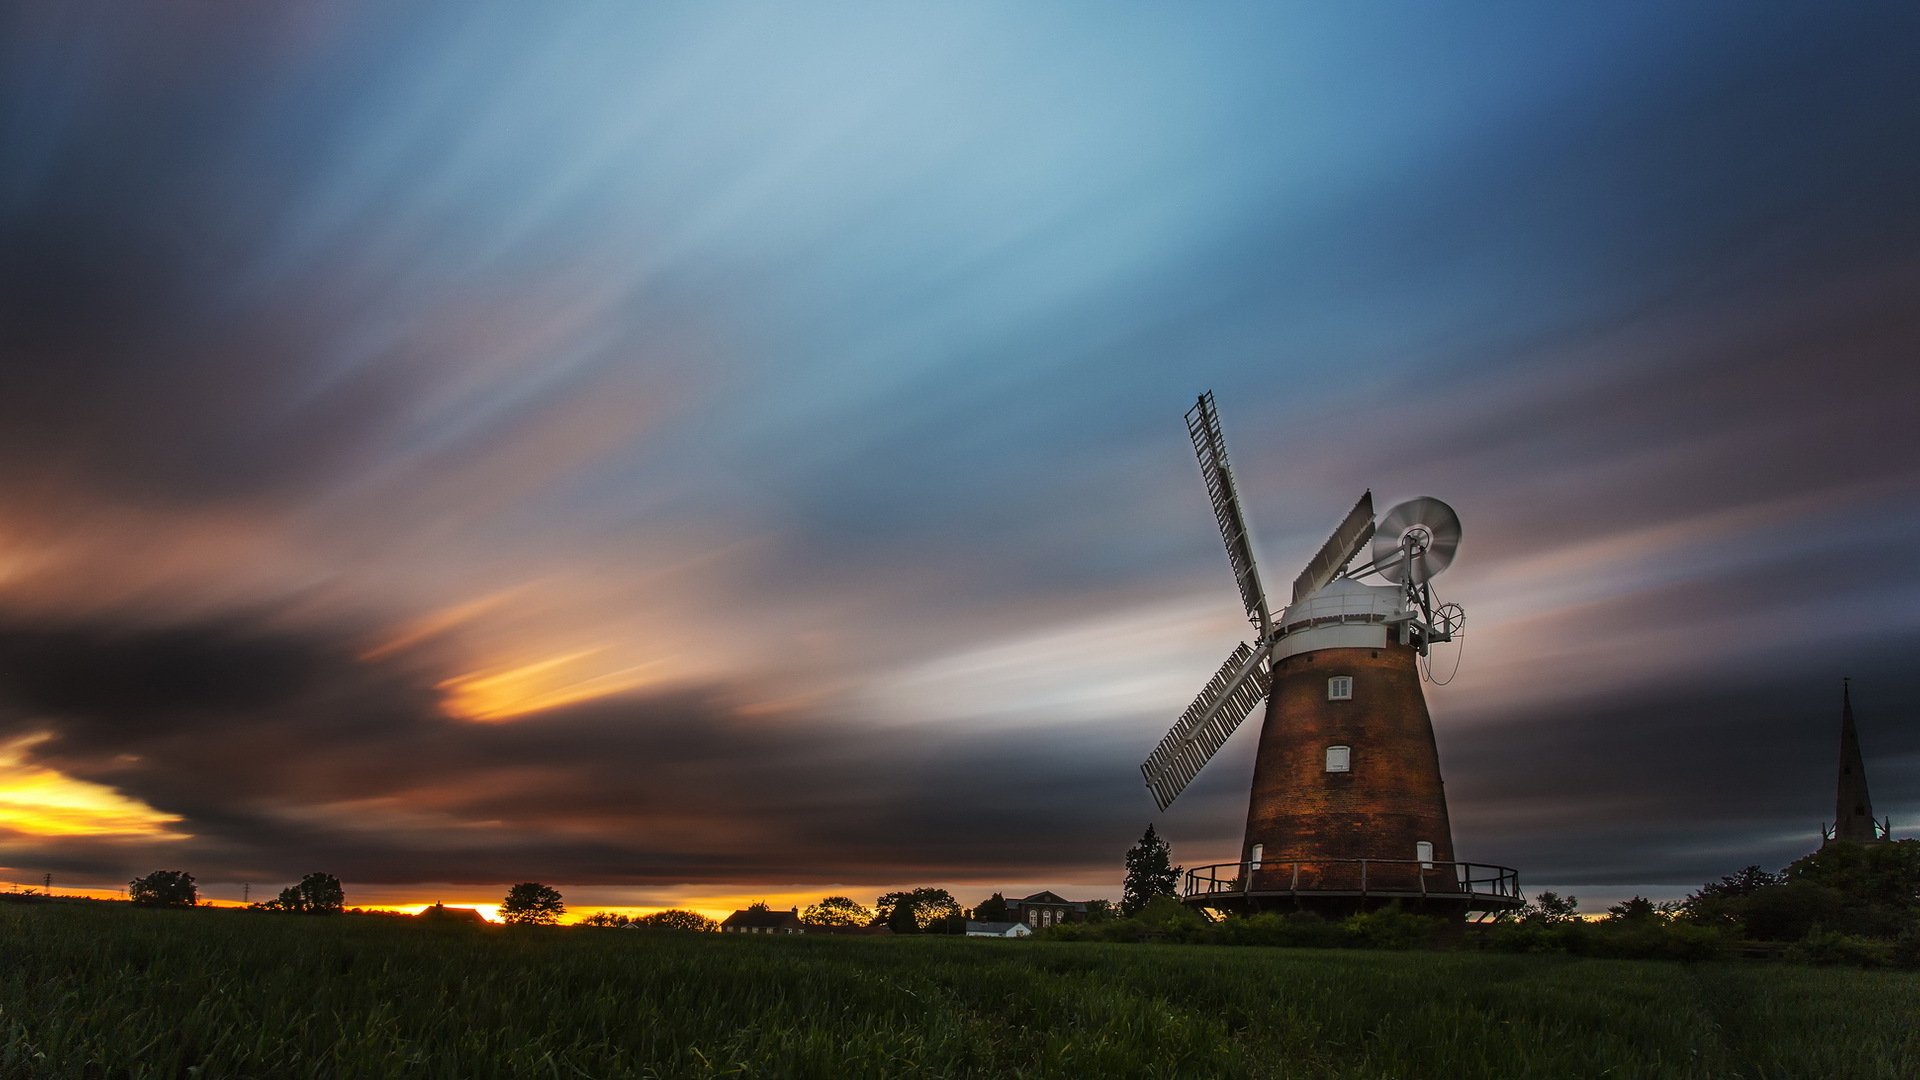 Beautiful Wallpapers For Iphone 6 Plus Windmill Hd Wallpaper Background Image 1920x1080 Id